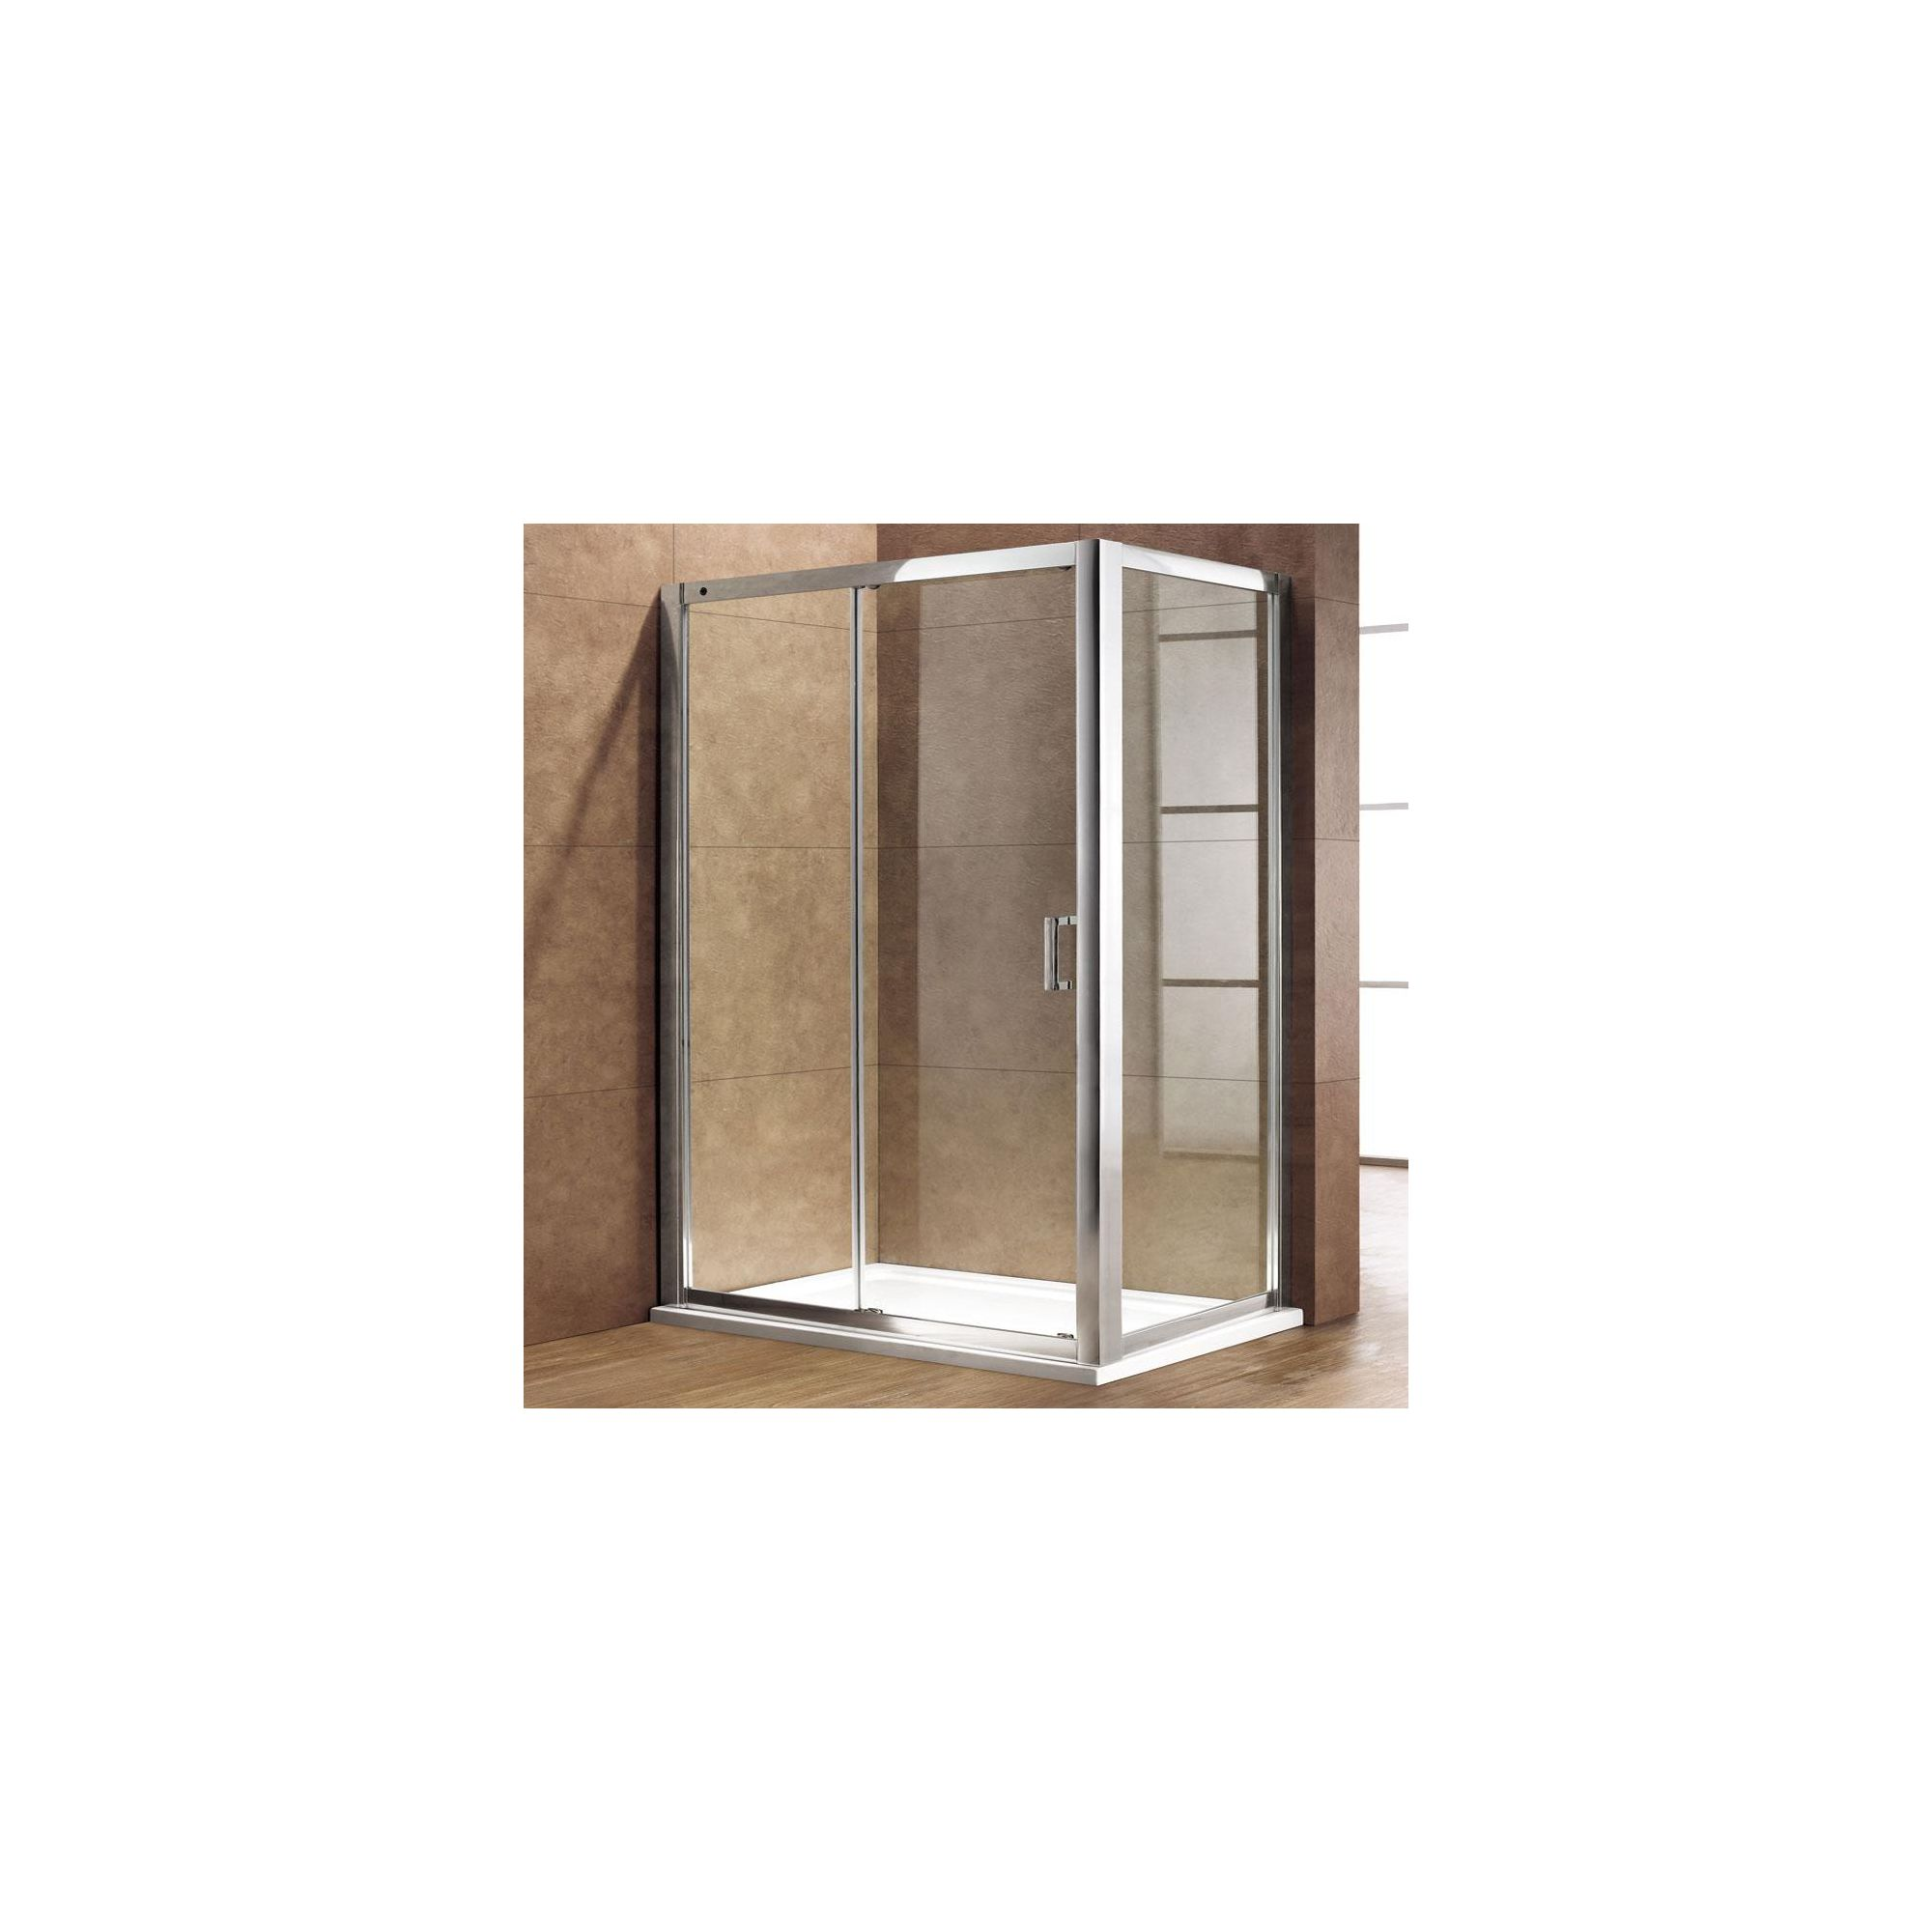 Duchy Premium Single Sliding Door Shower Enclosure, 1100mm x 800mm, 8mm Glass, Low Profile Tray at Tesco Direct